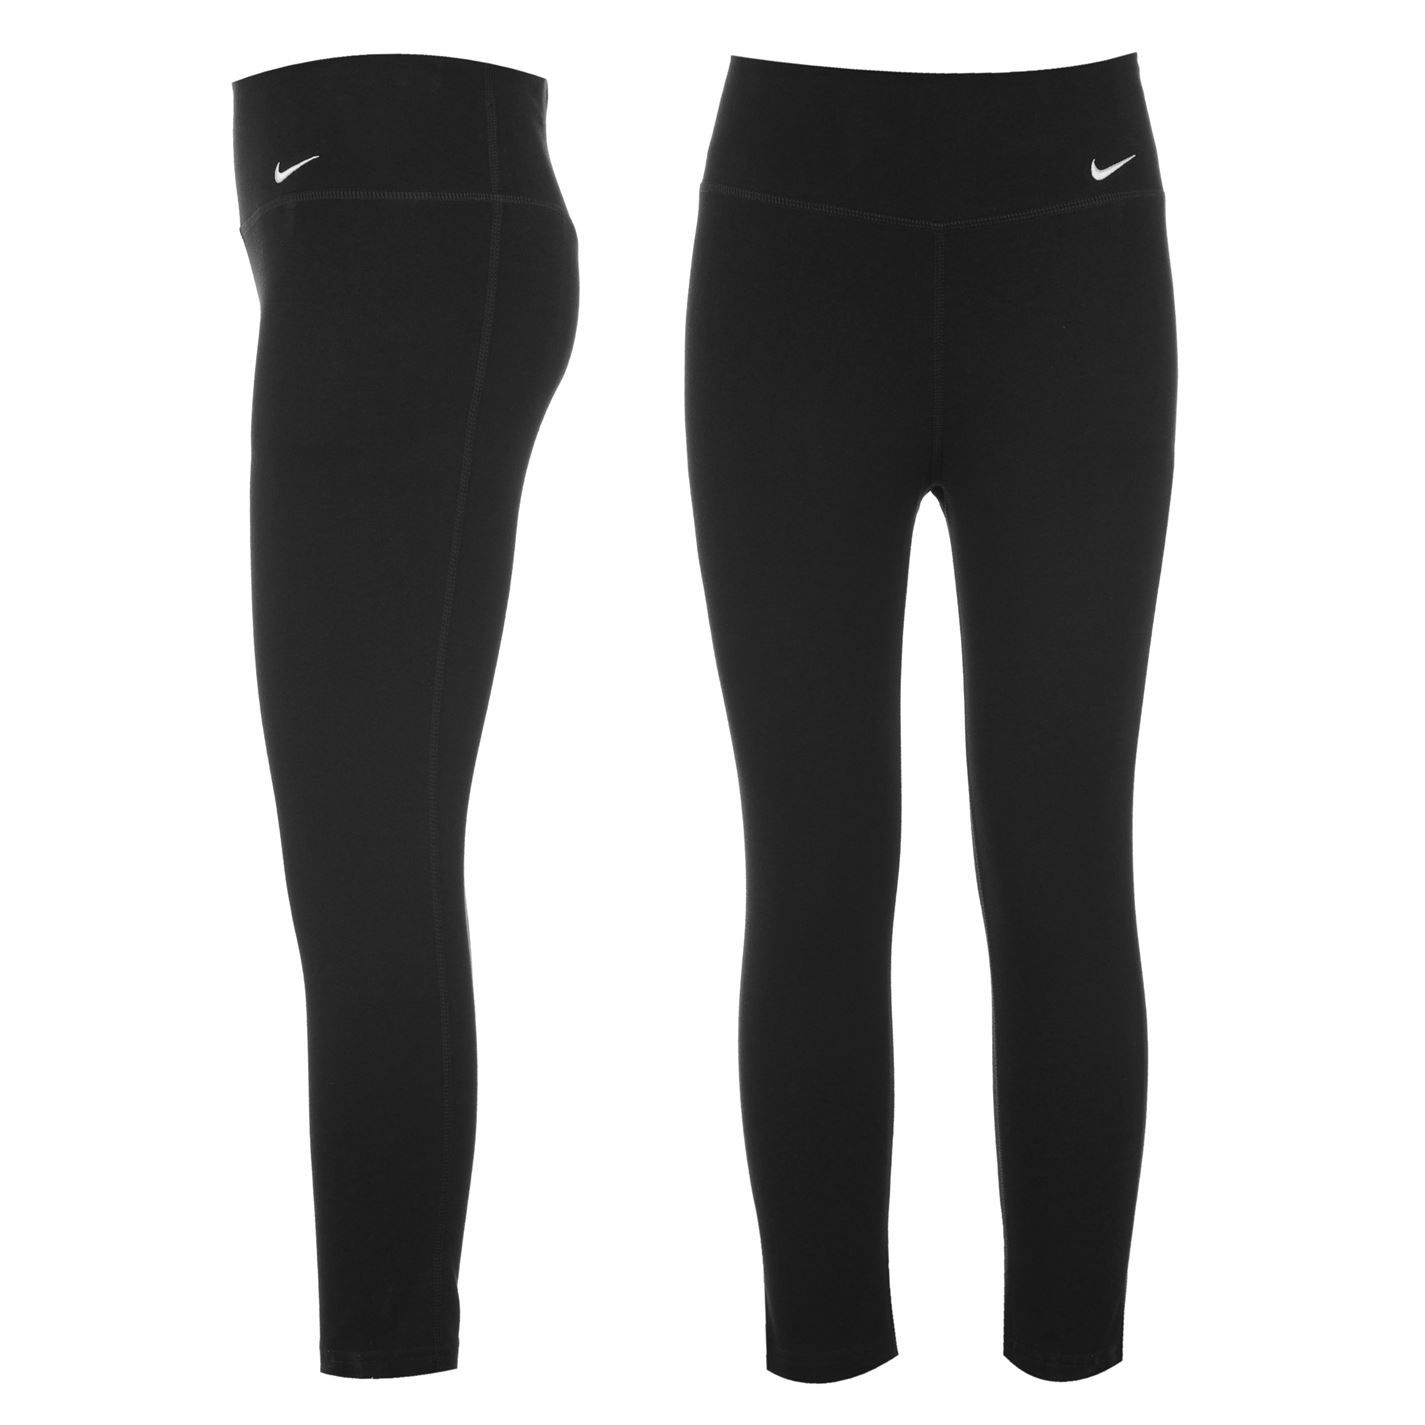 Nike | Nike Tight Cotton Capri Pants Ladies | Ladies Three Quarter ...